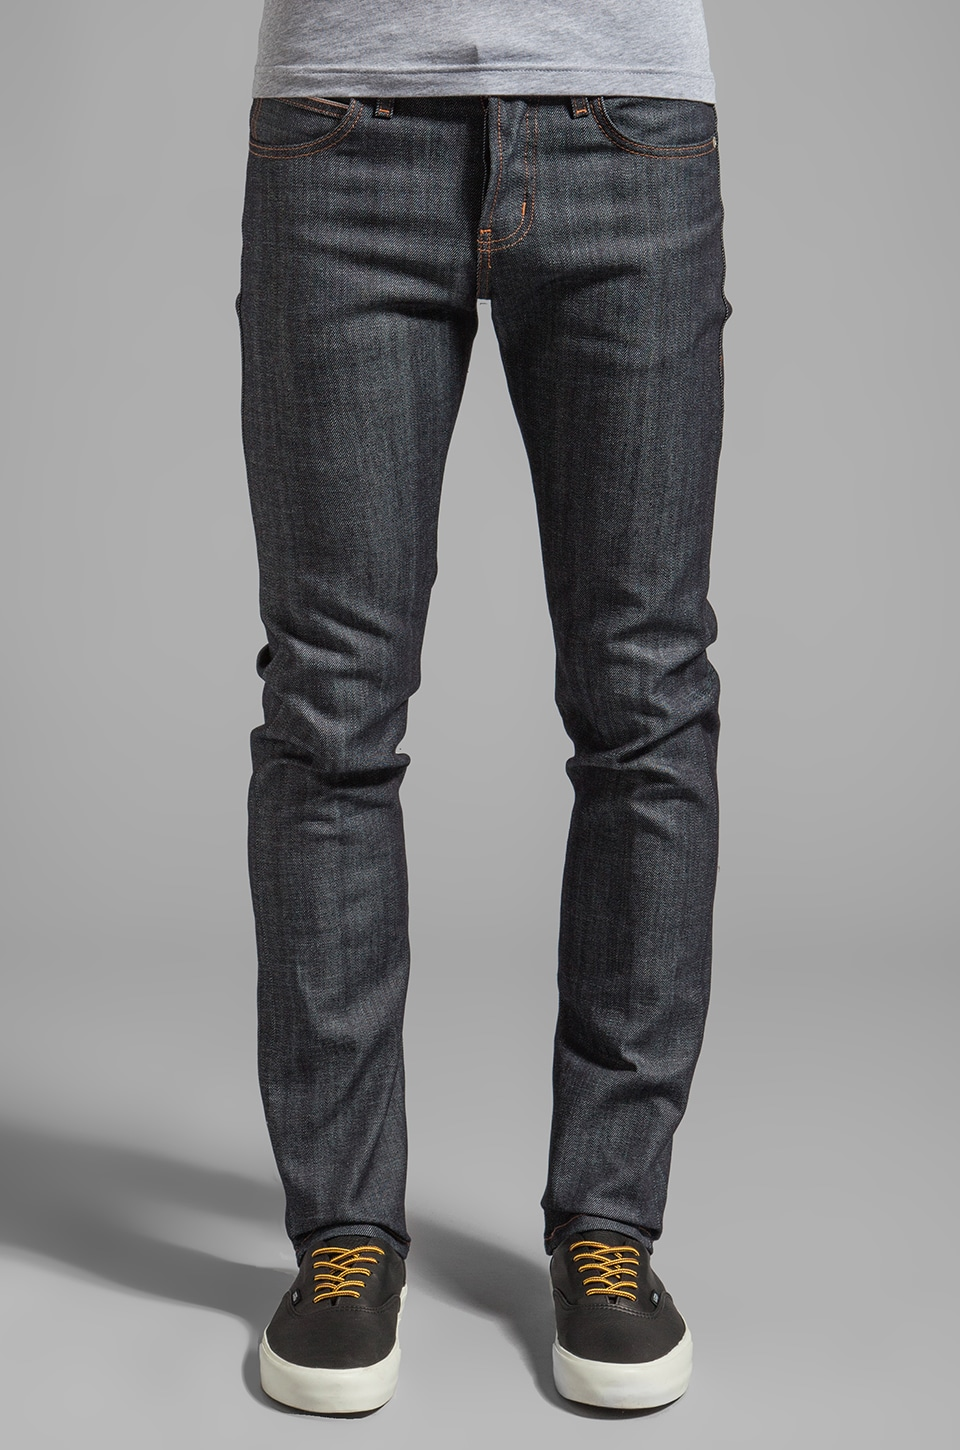 Naked & Famous Denim Super Skinny Guy Stretch Selvedge 12.5 oz in Indigo